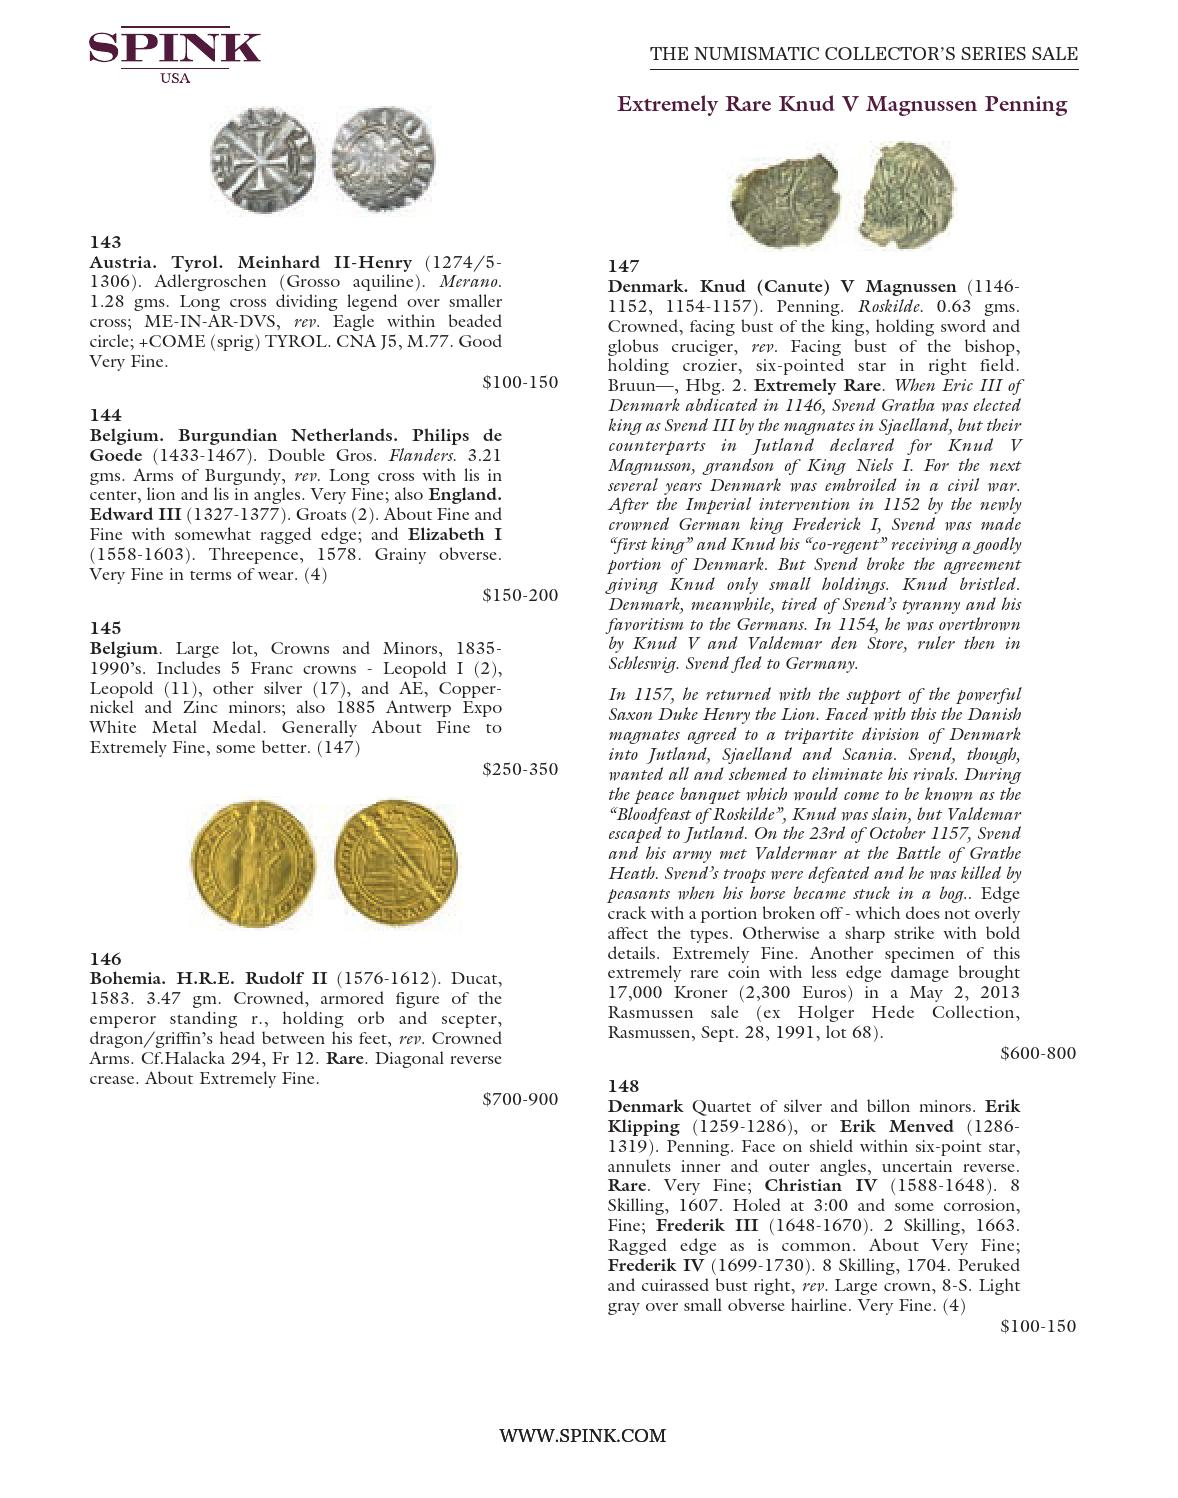 The Numismatic Collector's Series Sale - 323 by Spink and